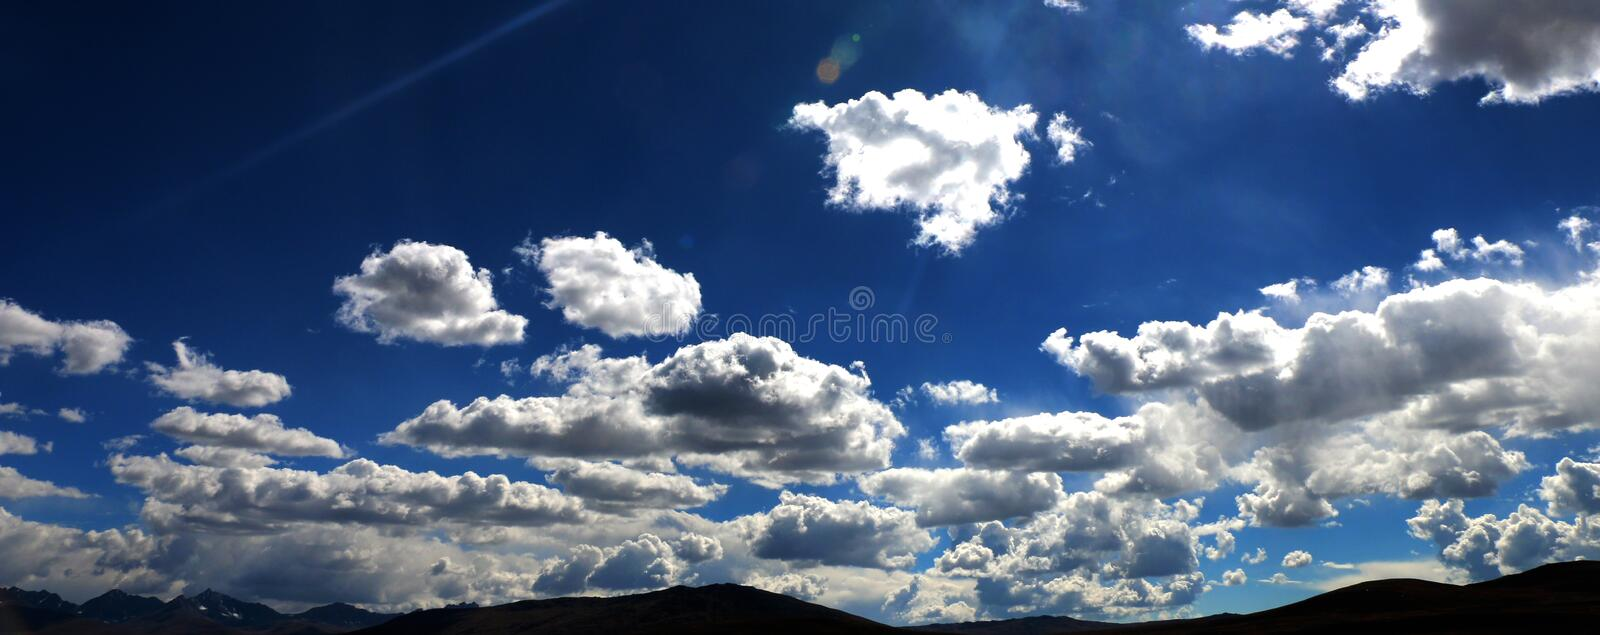 Sunlight Crosing The Clouds and Blue Sky stock photo